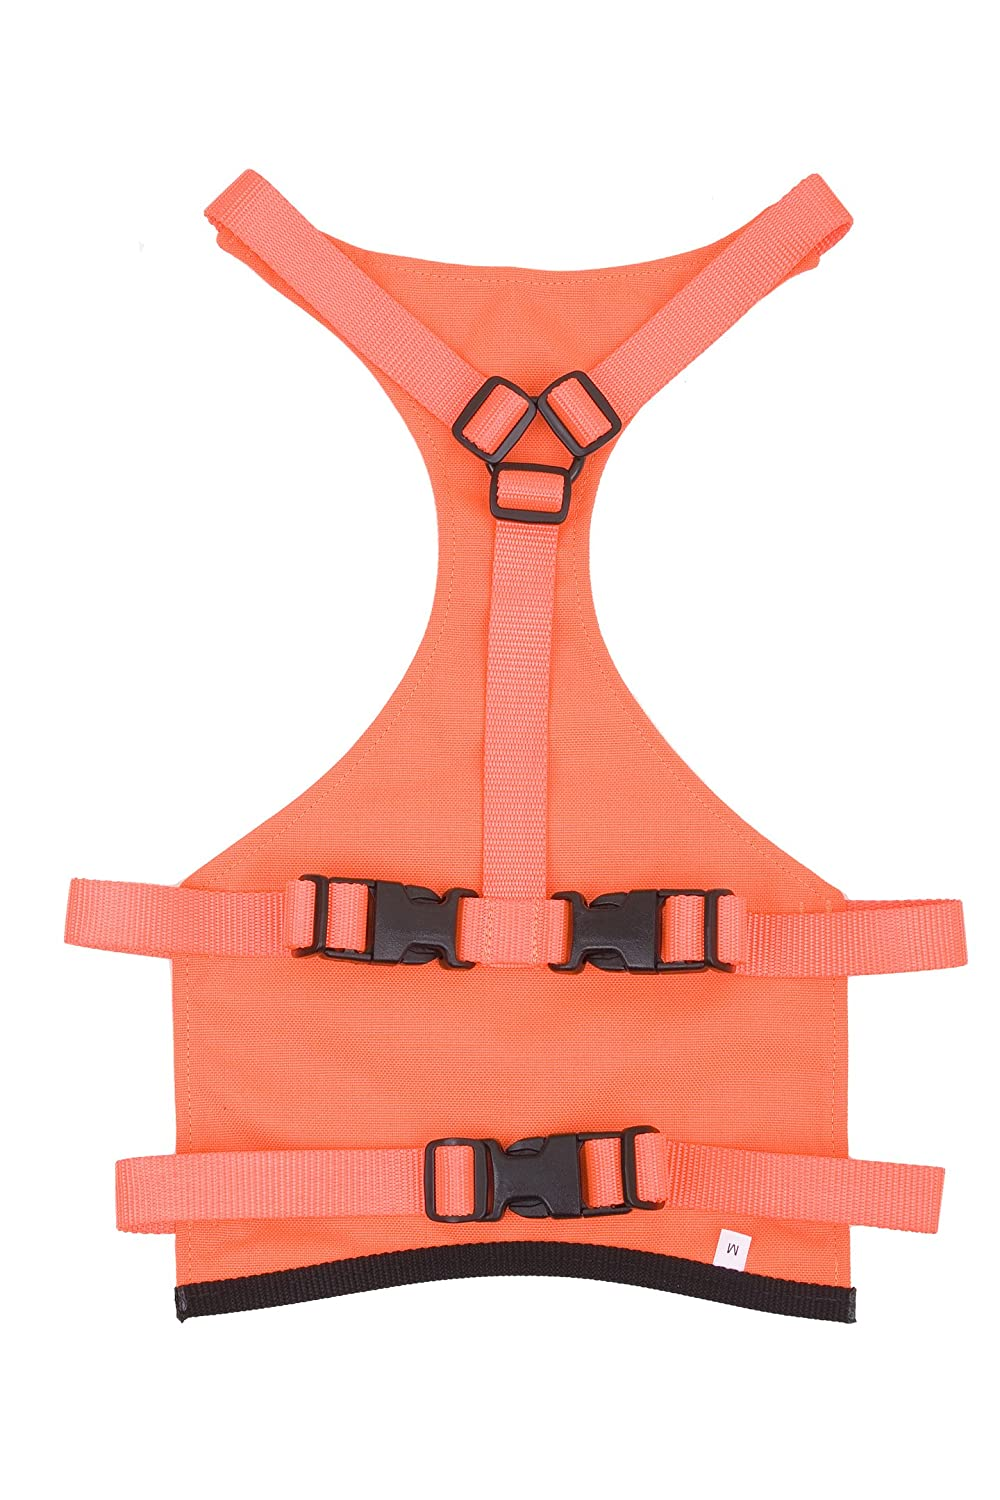 Mendota Products Skid Plate Dog Chest Protector MENDM